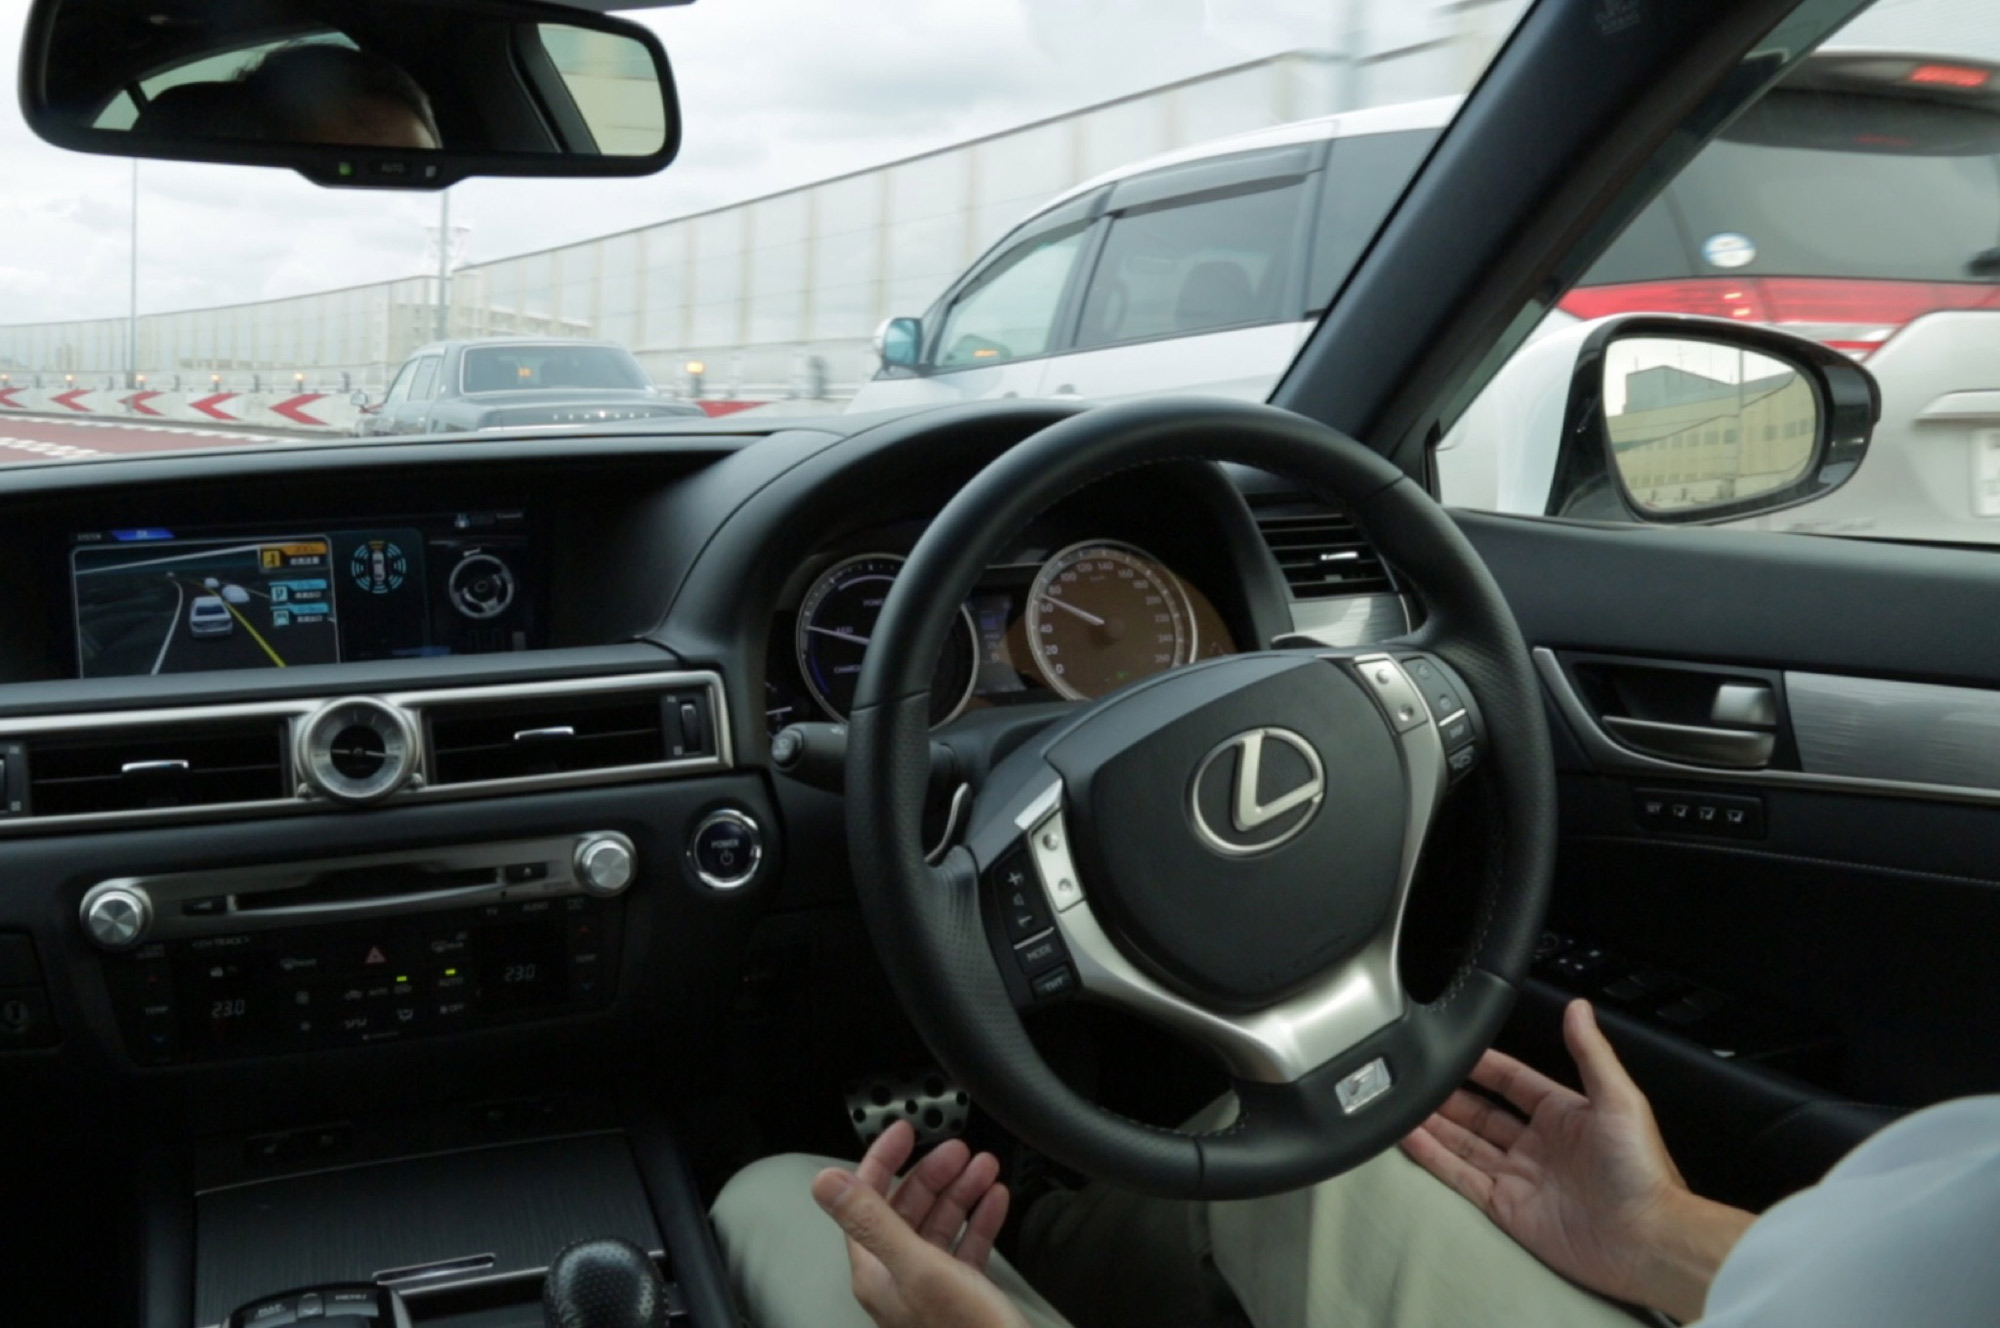 Lexus self-driving interior